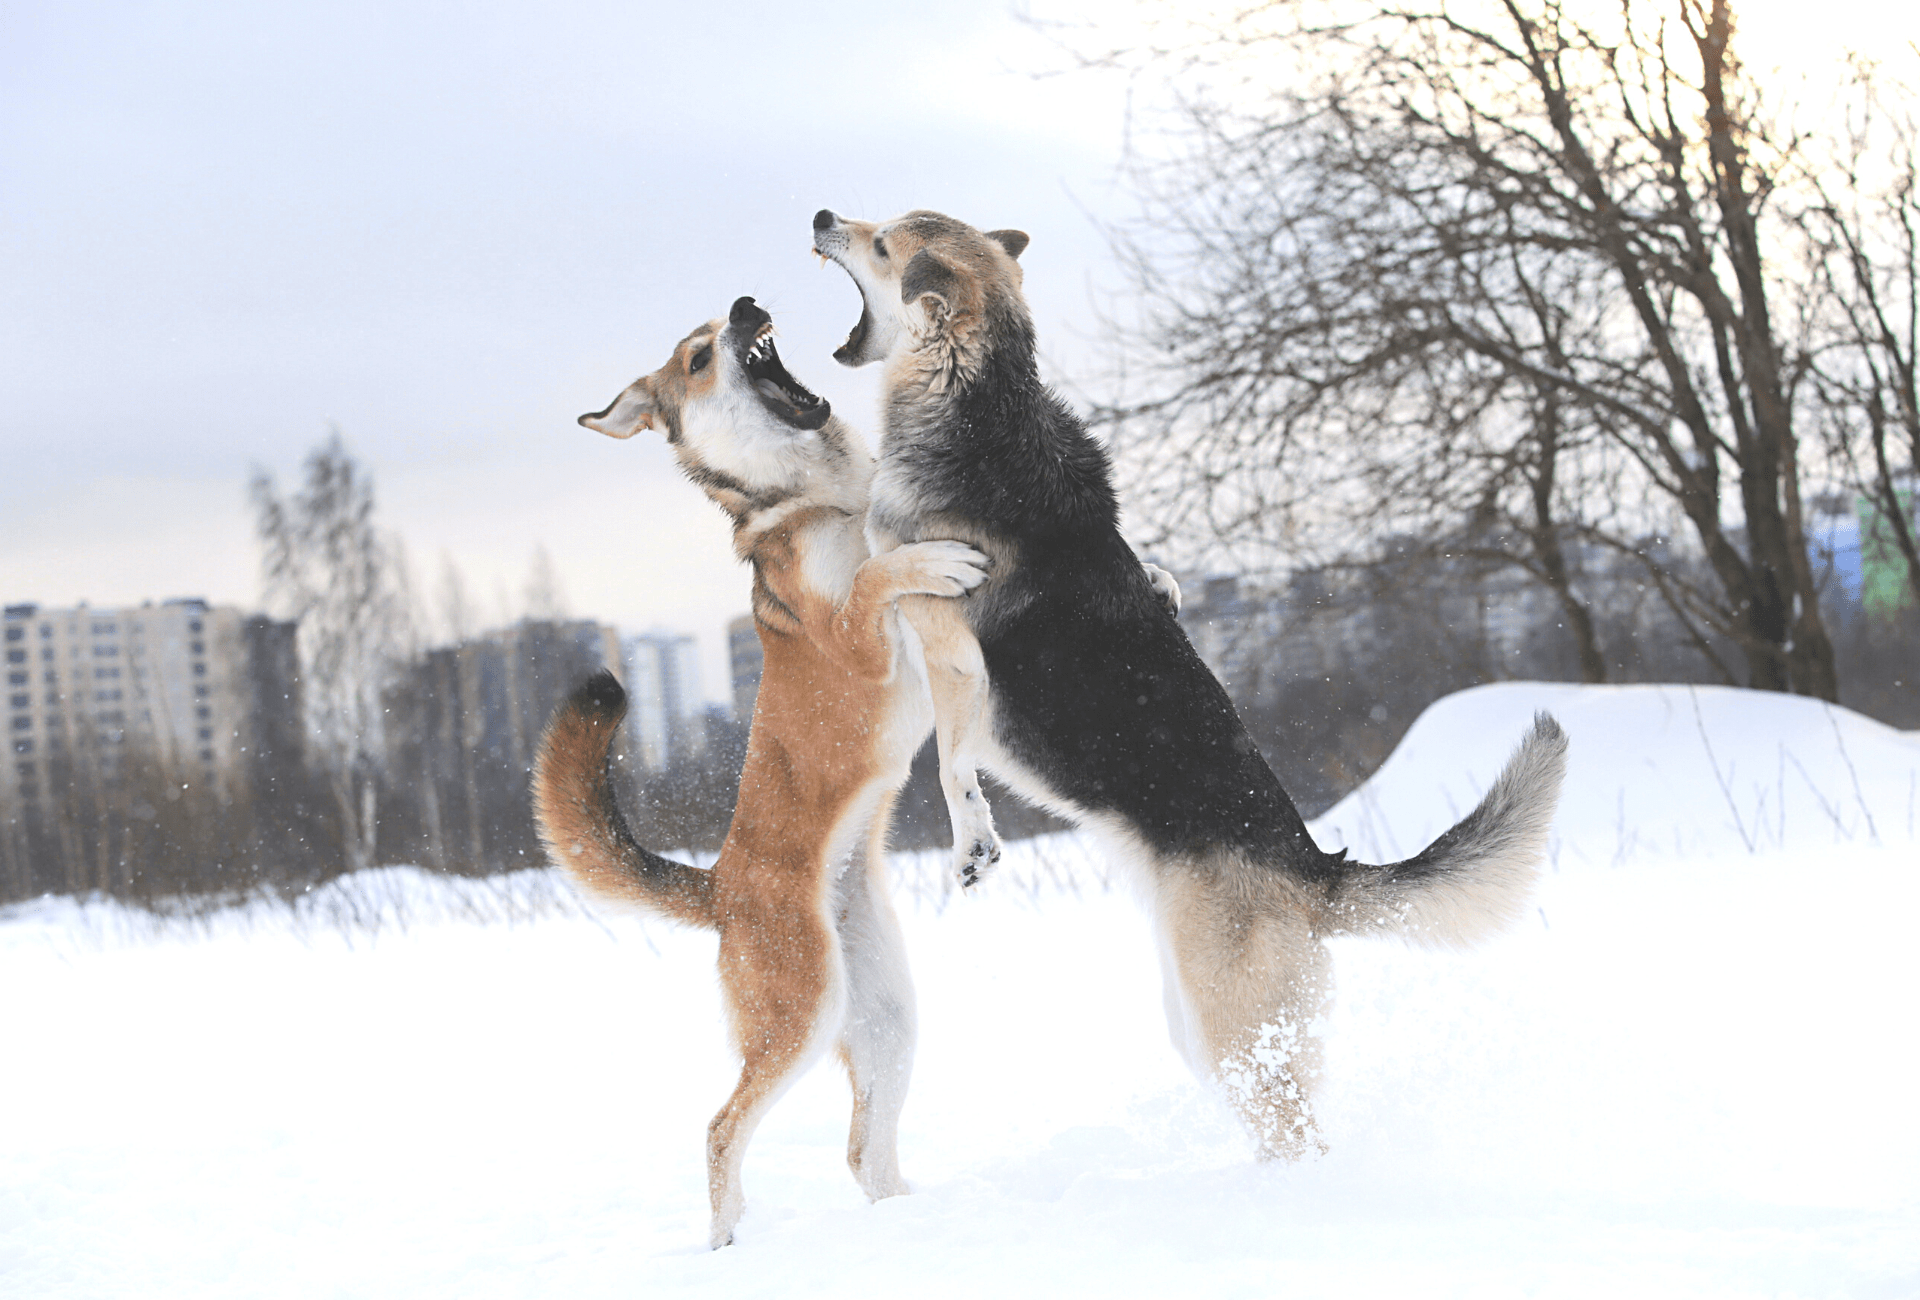 Two dogs clashing midair in the snow.